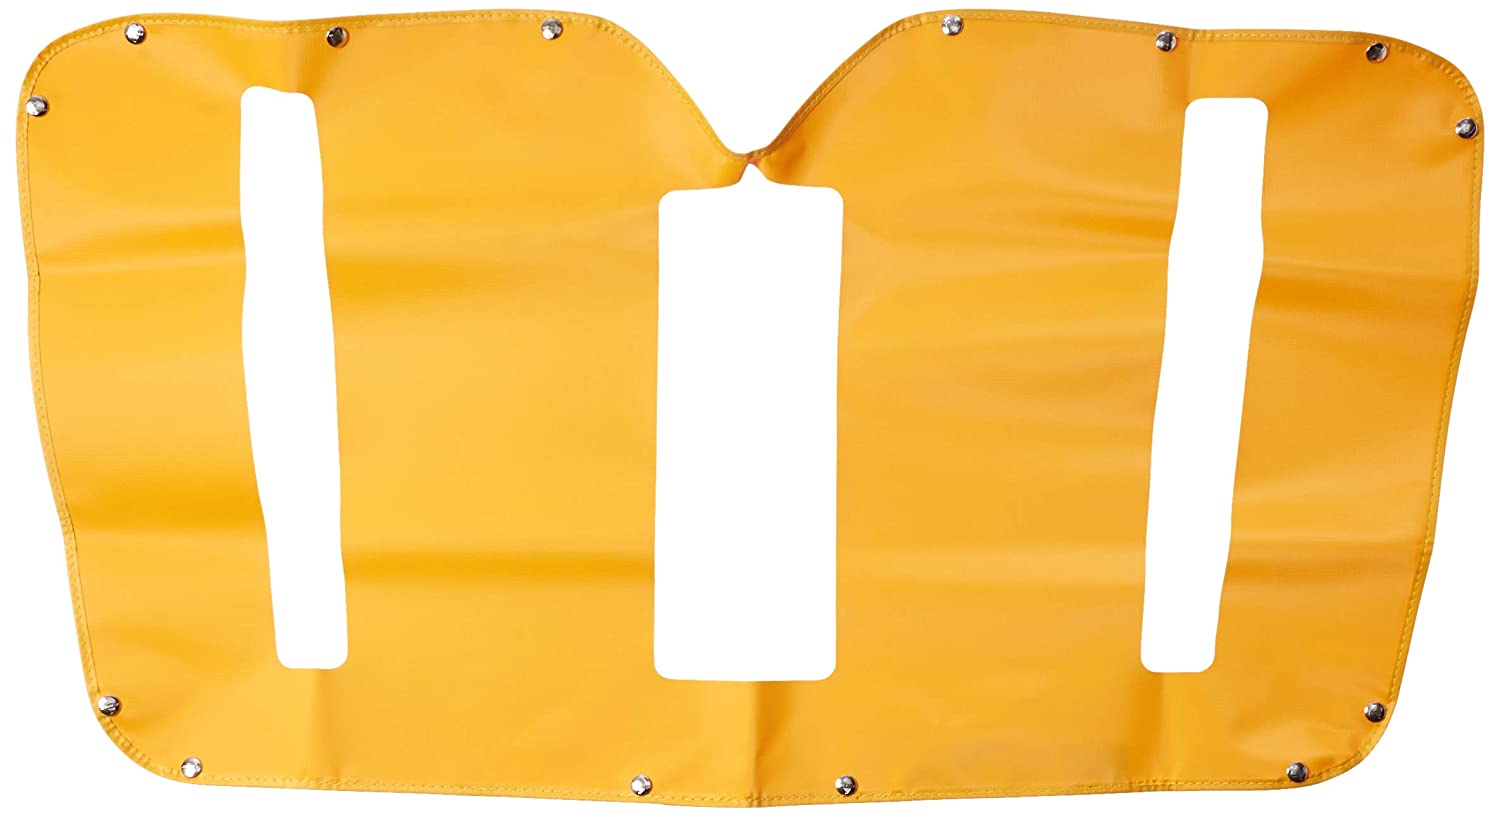 Belmor WF-2189Y-1 Yellow Winterfront Truck Grille Cover for 2002-2003 International IC Bus